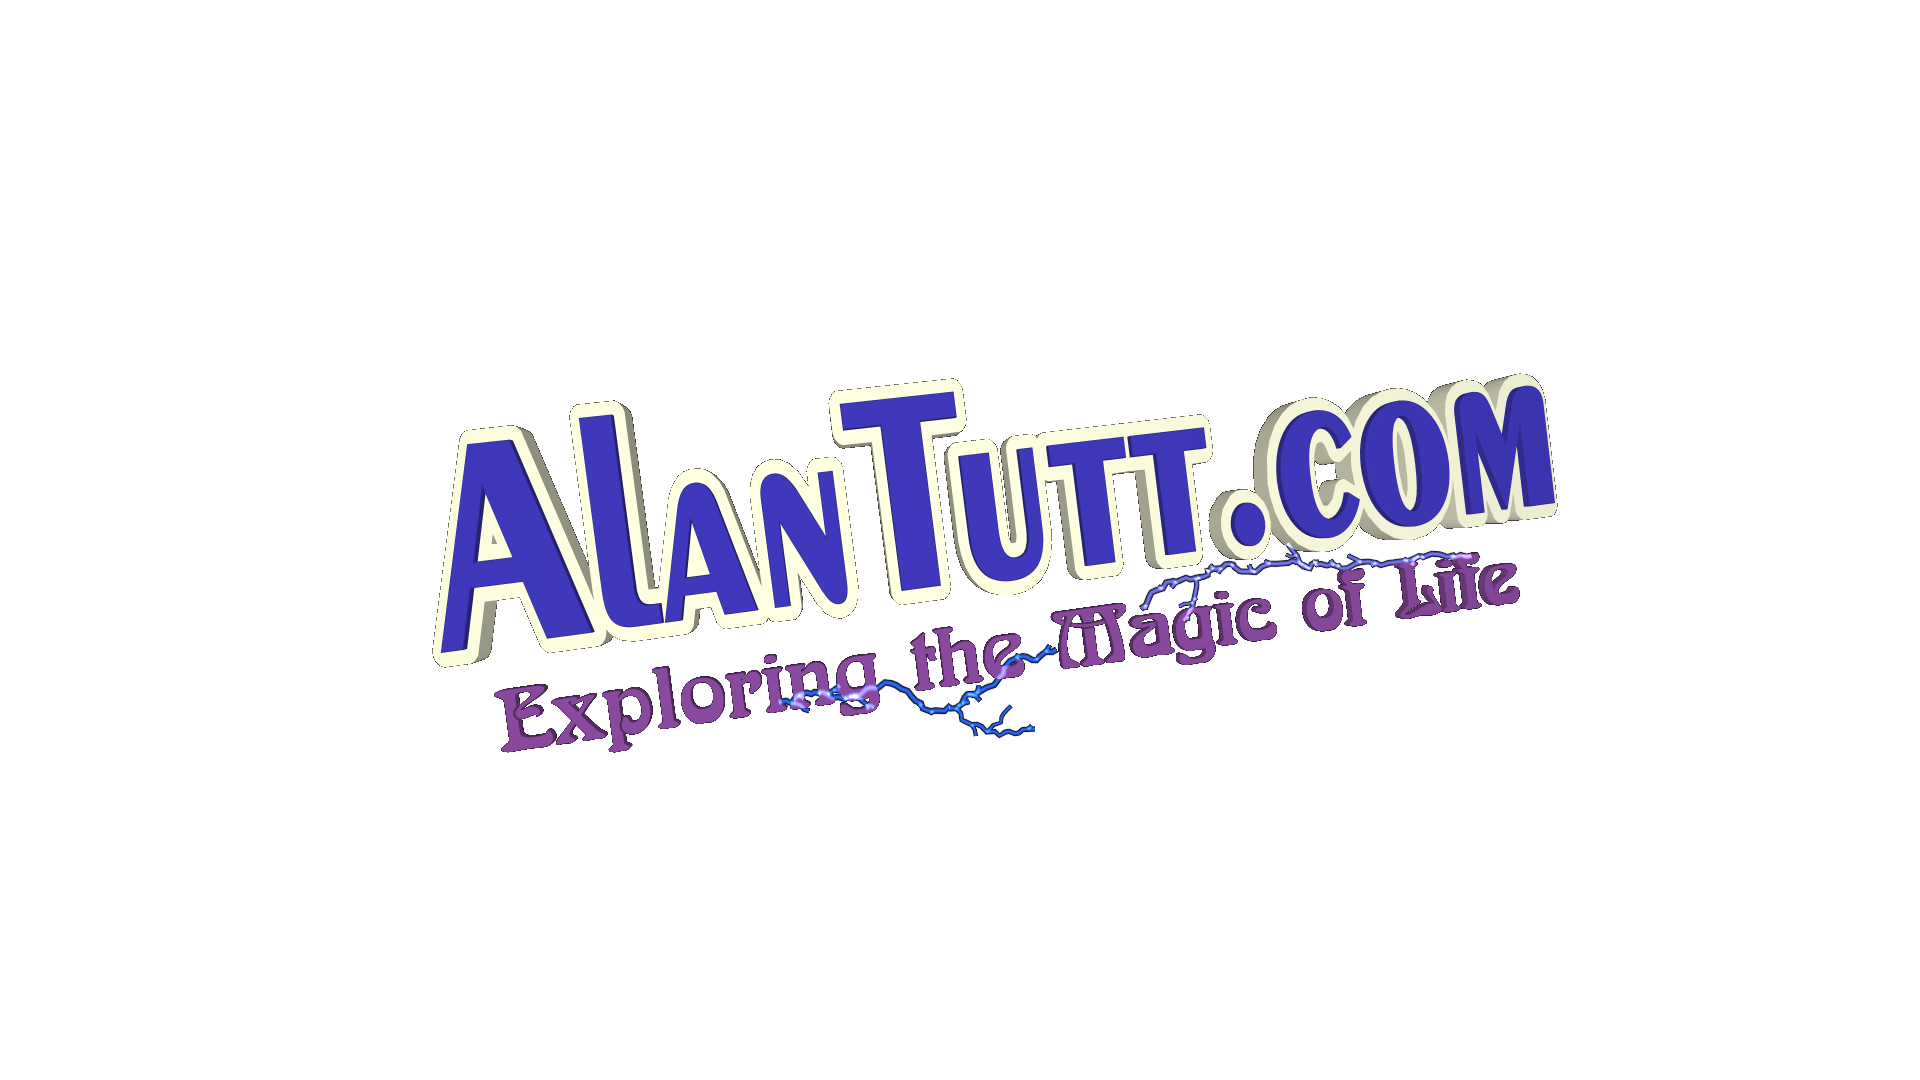 AlanTutt.com - Exploring the Magic of Life